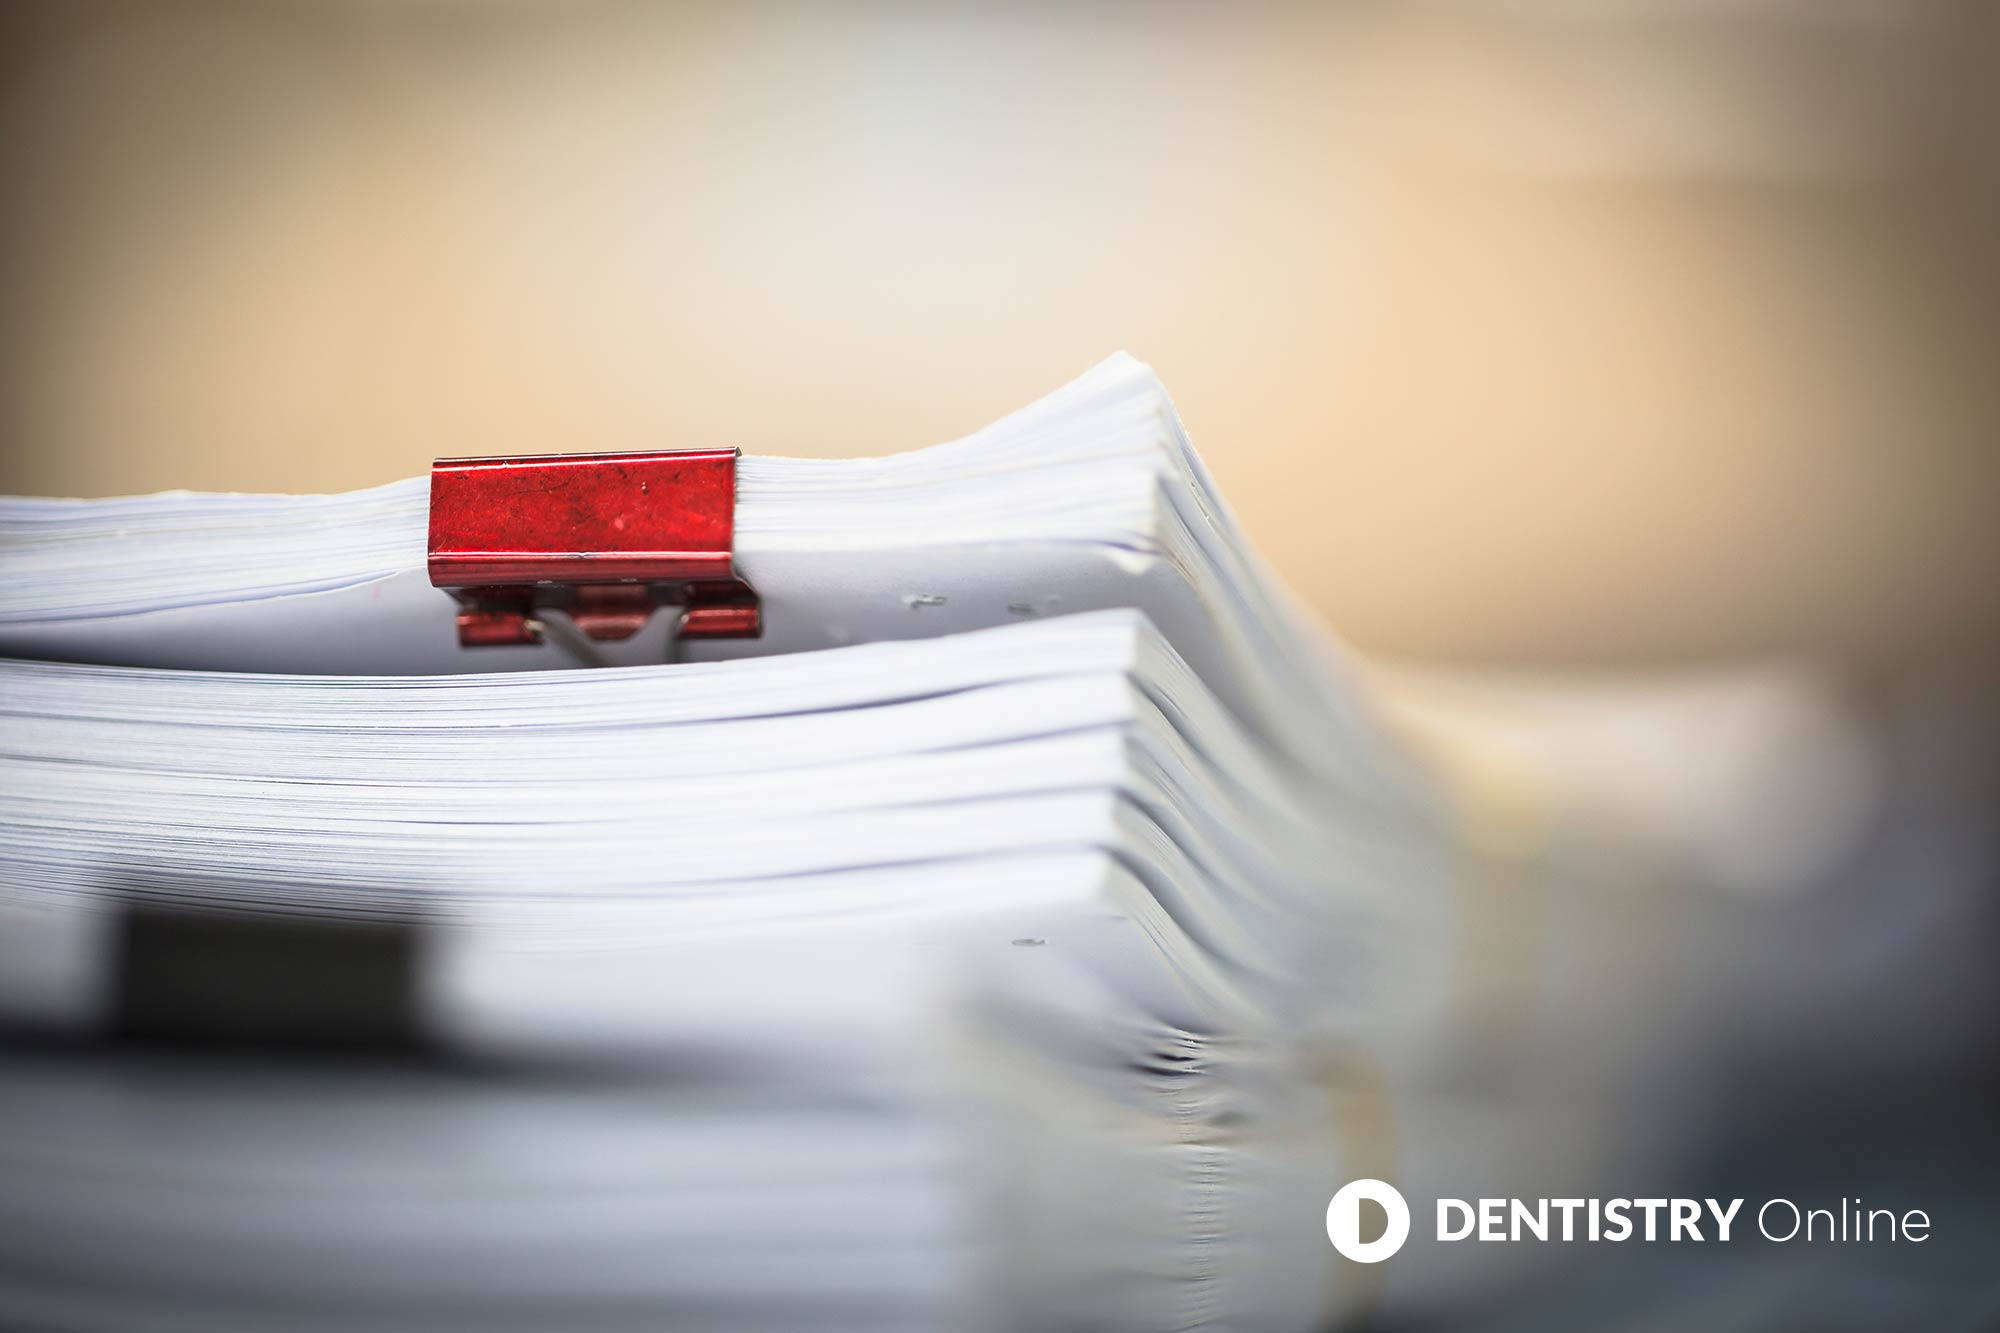 The latest standard operating procedure (SOP) for NHS dental services in England has been released